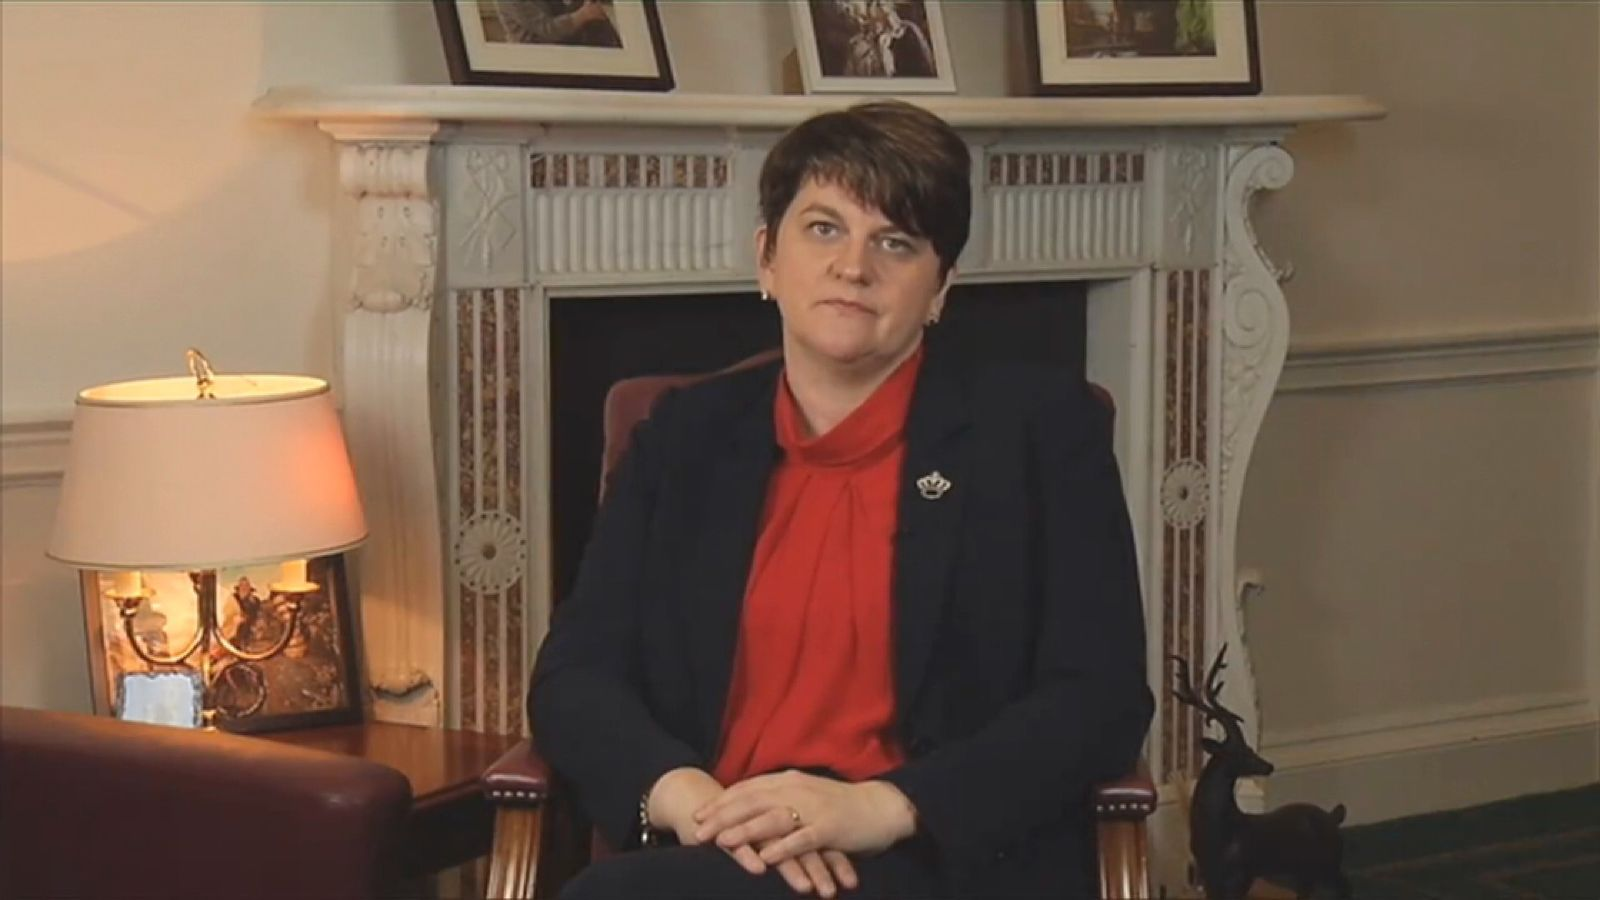 Arlene Foster responds to the resignation of Martin McGuinness